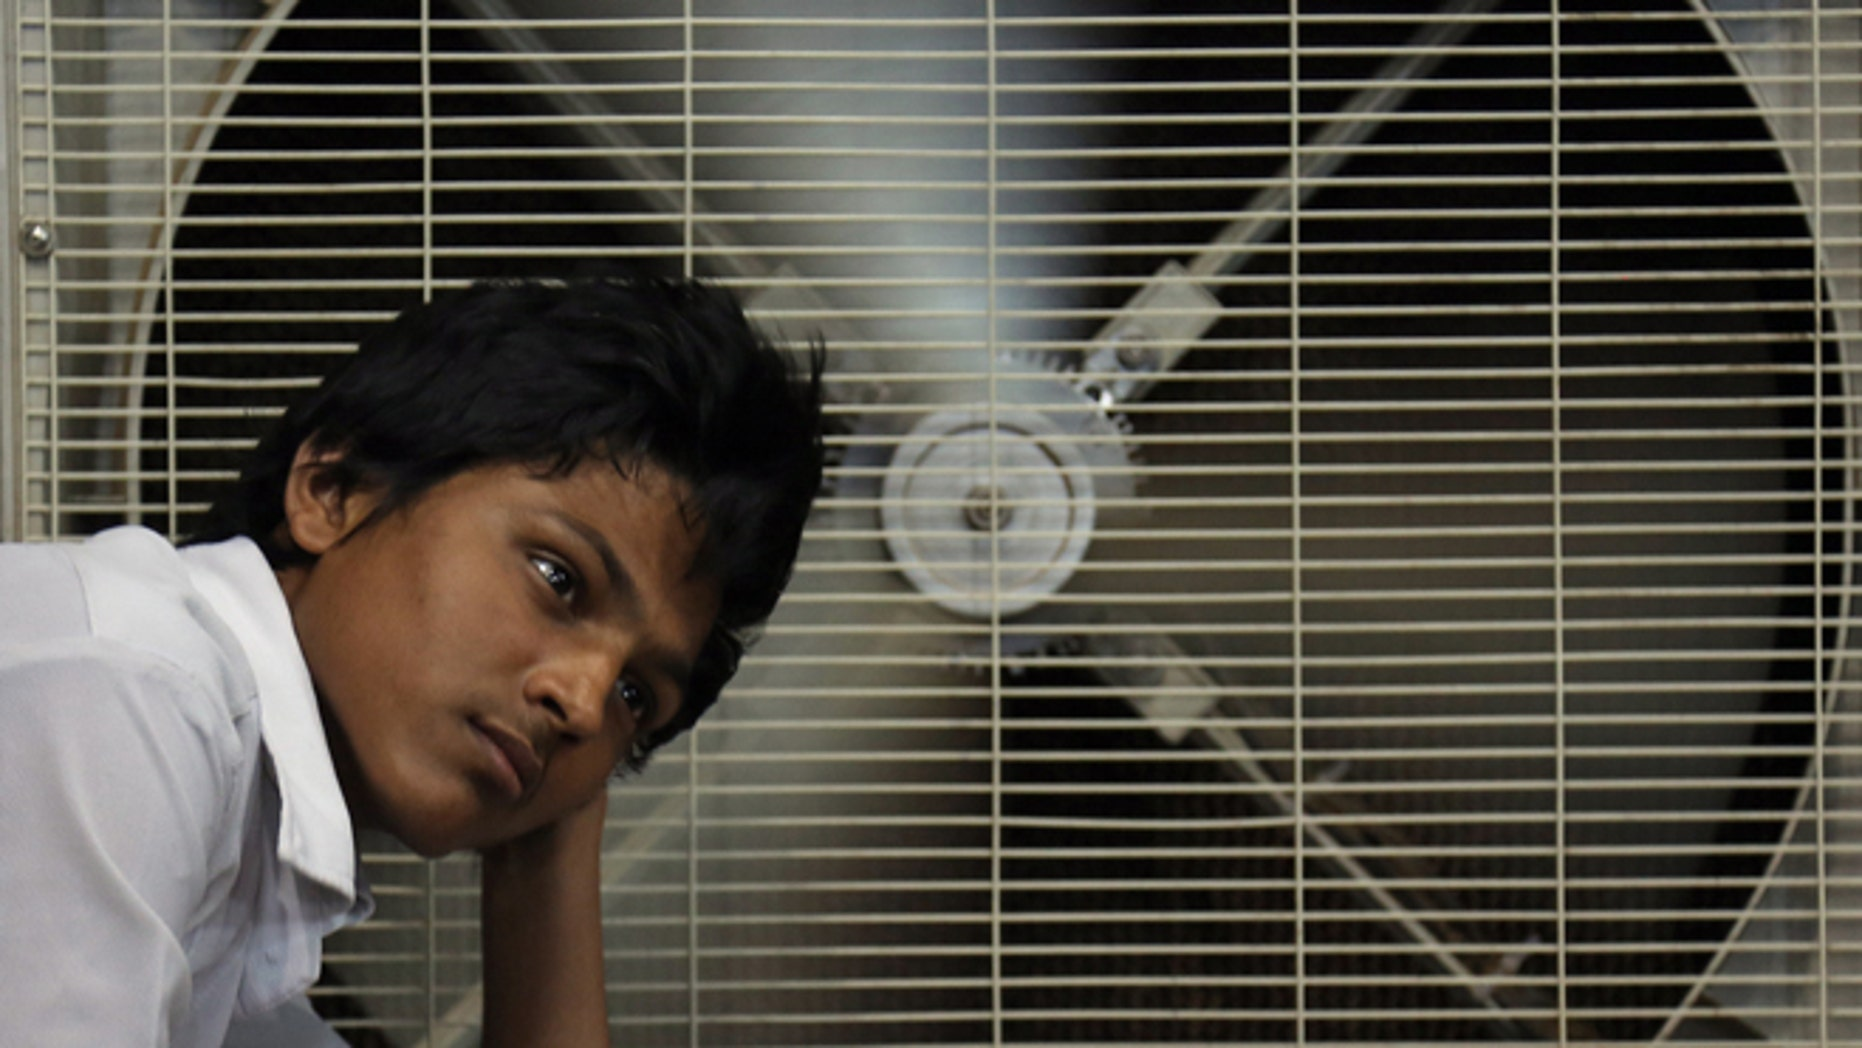 FILE - In this May 31, 2015 file photo, an Indian man rests in front of an air cooler to cool himself on a hot summer day in Hyderabad, in the southern Indian state of Telangana. Because of man-made global warming and a strong El Nino, Earths wild weather this year is bursting the annual heat record, the World Meteorological Organization announced Wednesday. (AP Photo/Mahesh Kumar A., File)